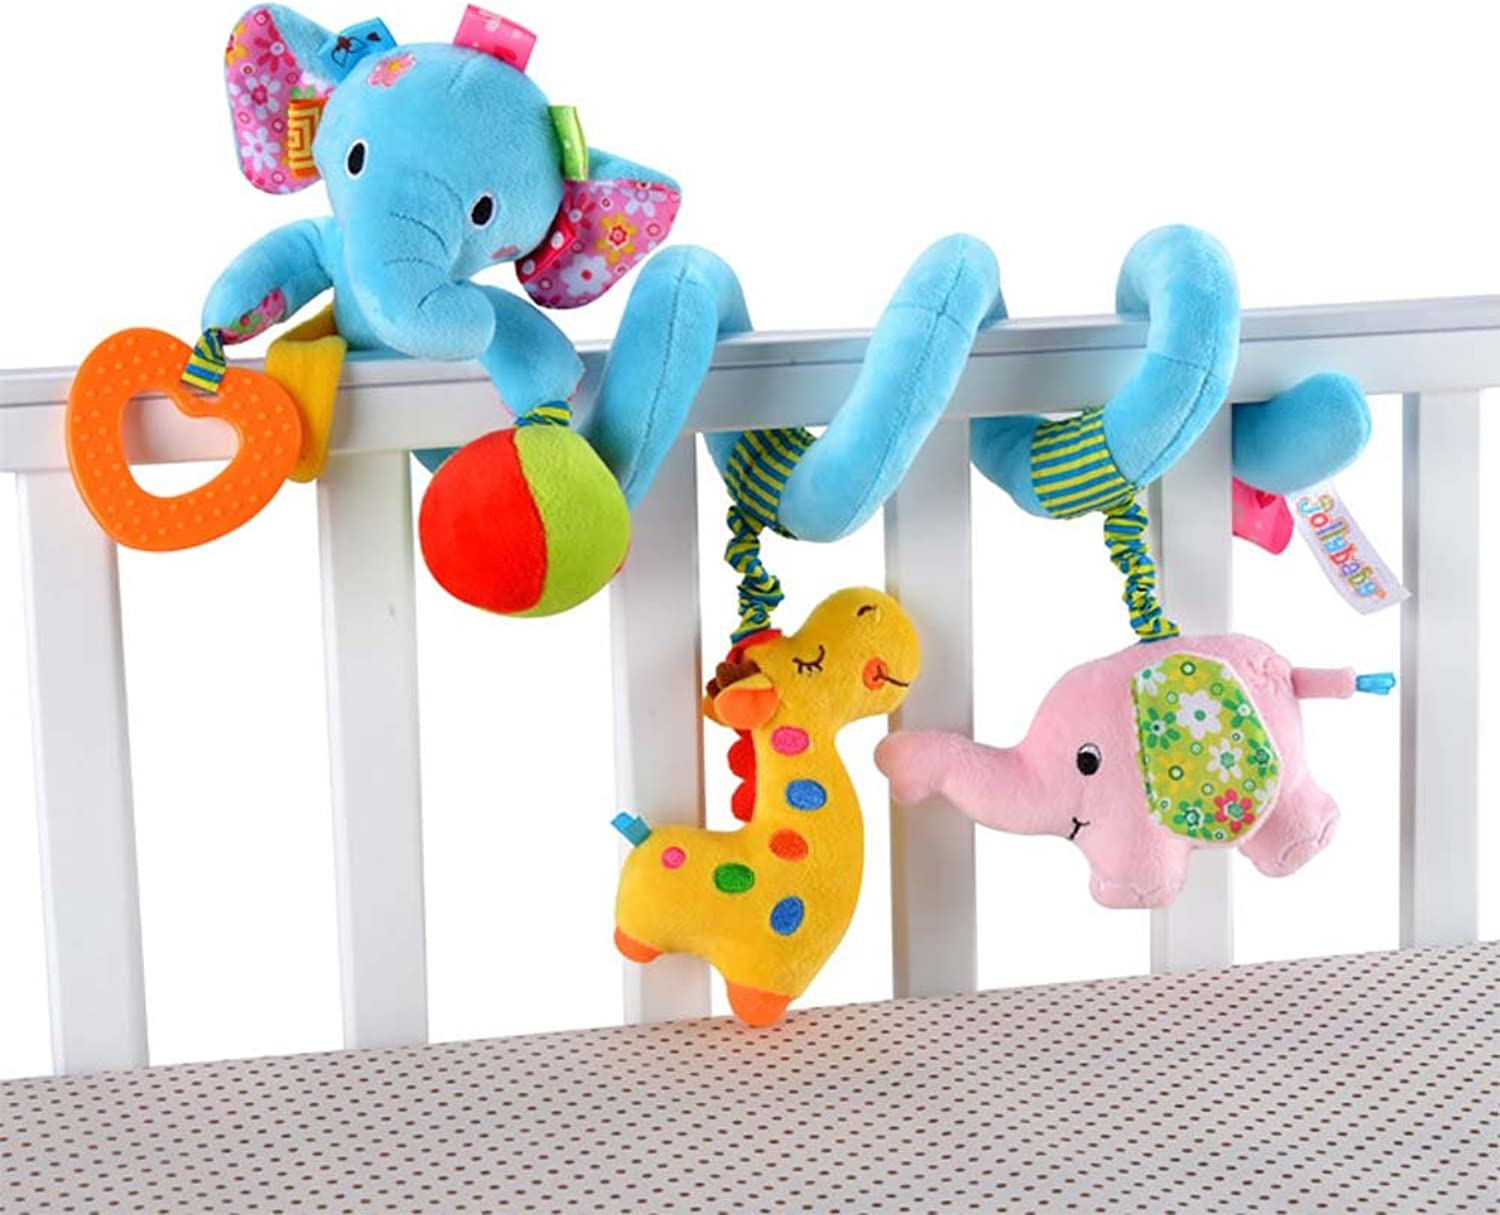 Singring Baby Pram Crib Cute bluee Elephant Design Activity Spiral Plush Toys Stroller and Travel Activity Toy